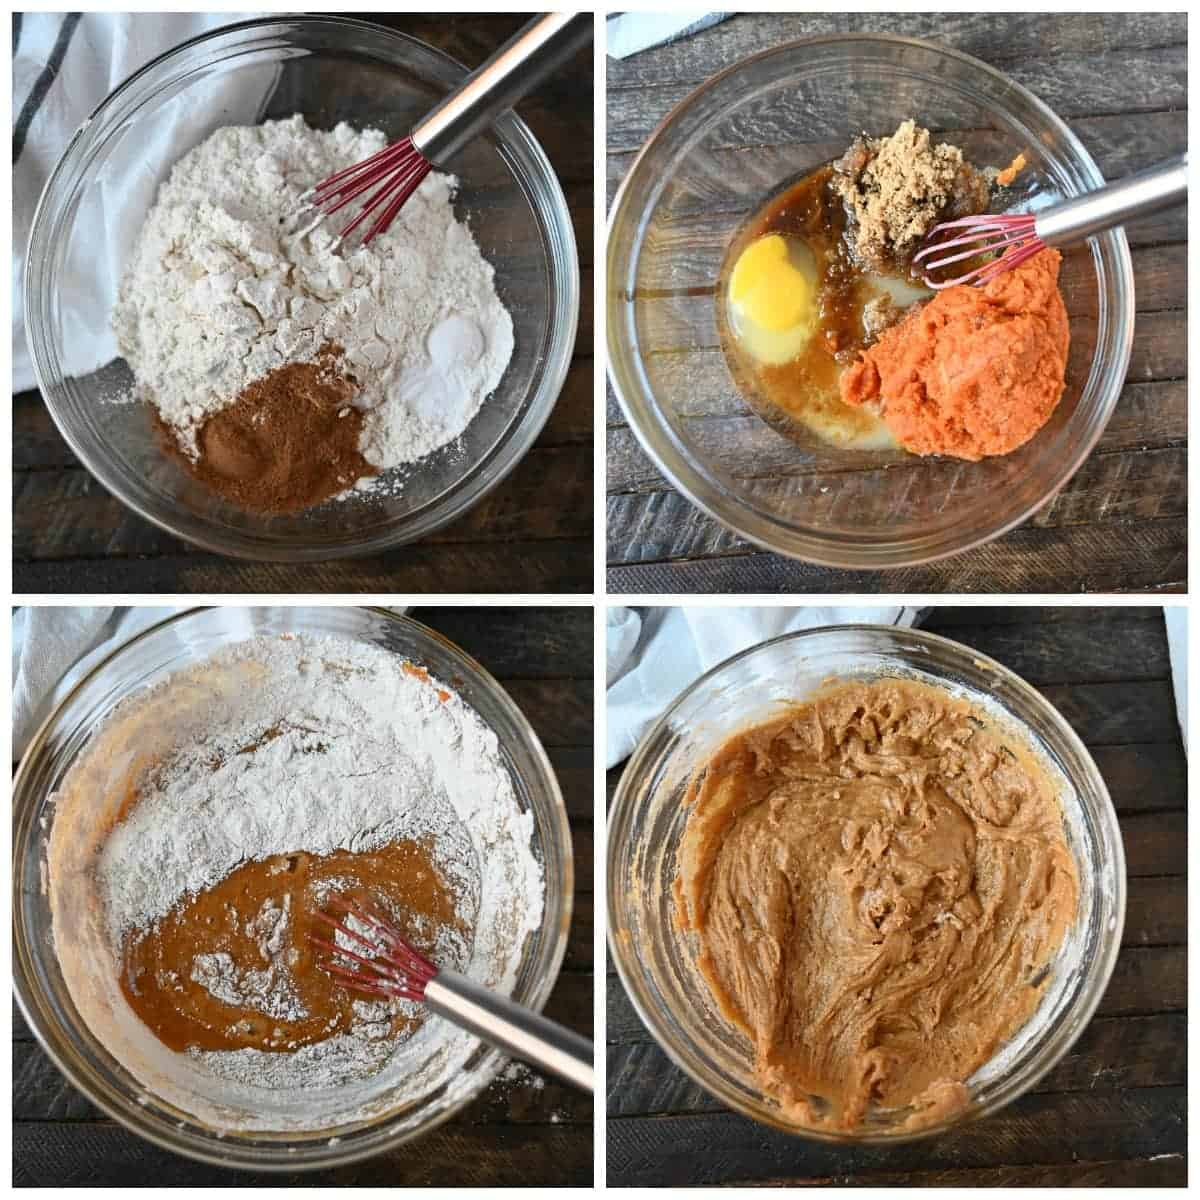 Four process photos. First one, all the dry ingredients sombined in a bowl. Second ob=ne, all the wet ingredients combined in a bowl. Third one, wet ingredients mixed with the dry. Fourth one, All the ingredients mixed and combined.